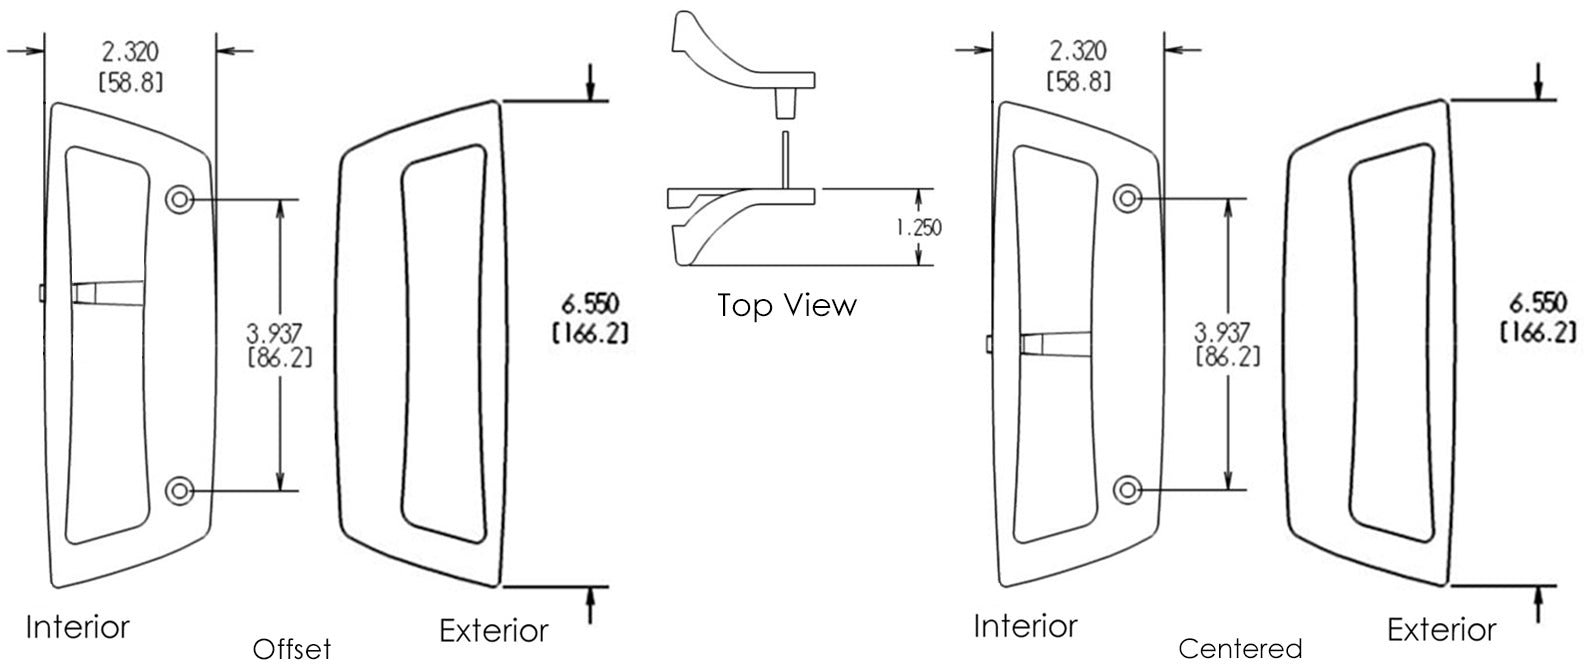 FPL Balcony Patio Dimensions